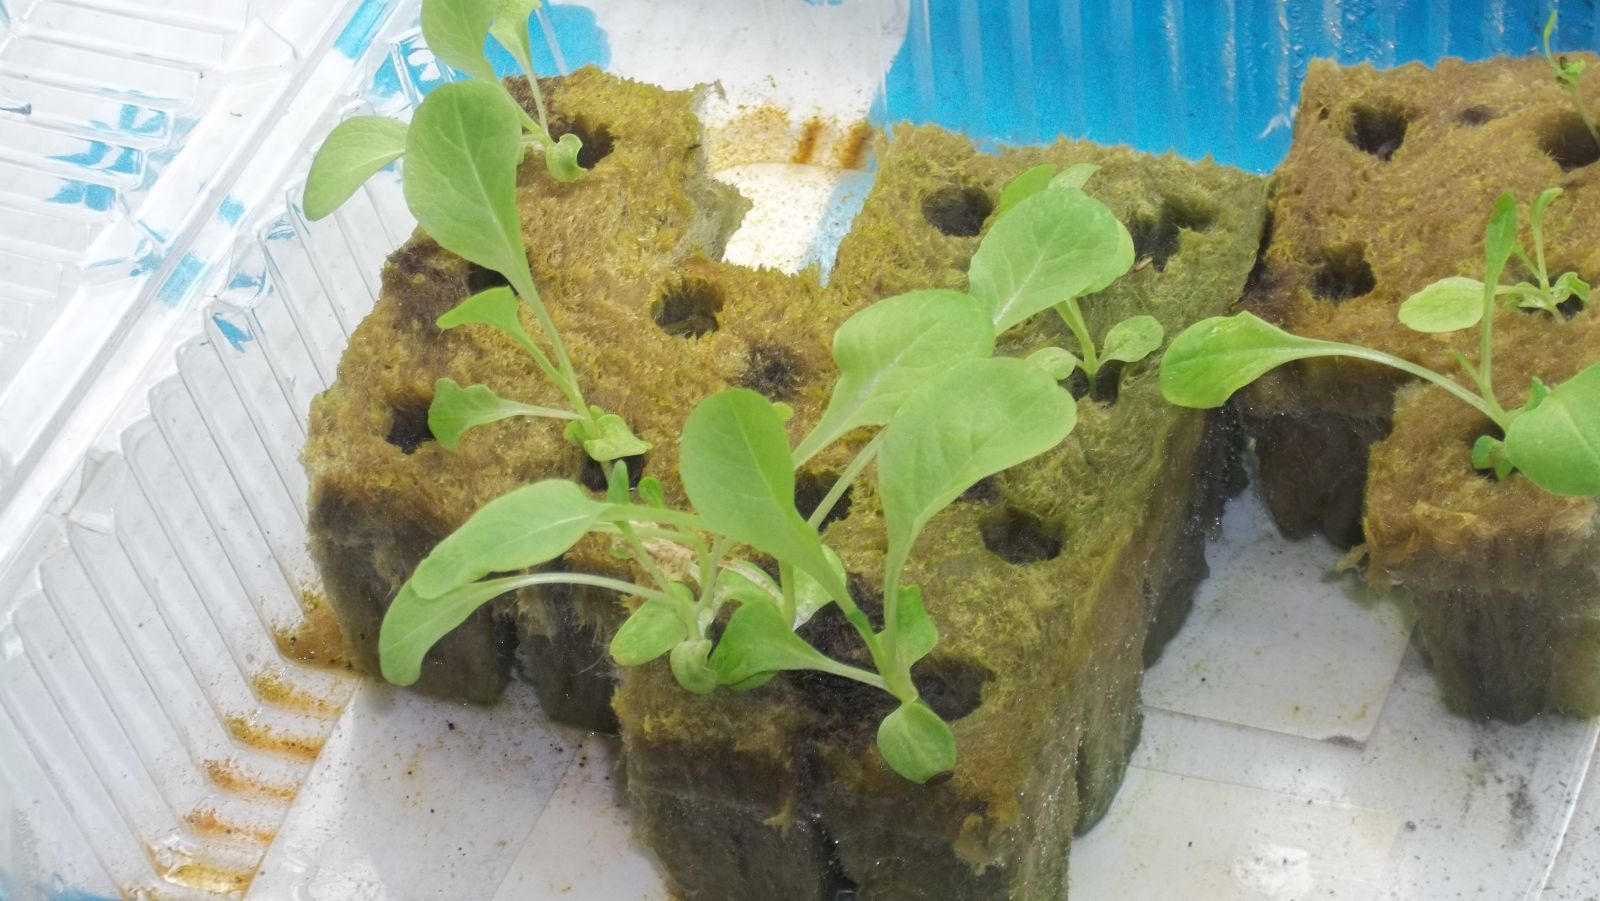 Lettuce Geminated In Rockwool Cubes